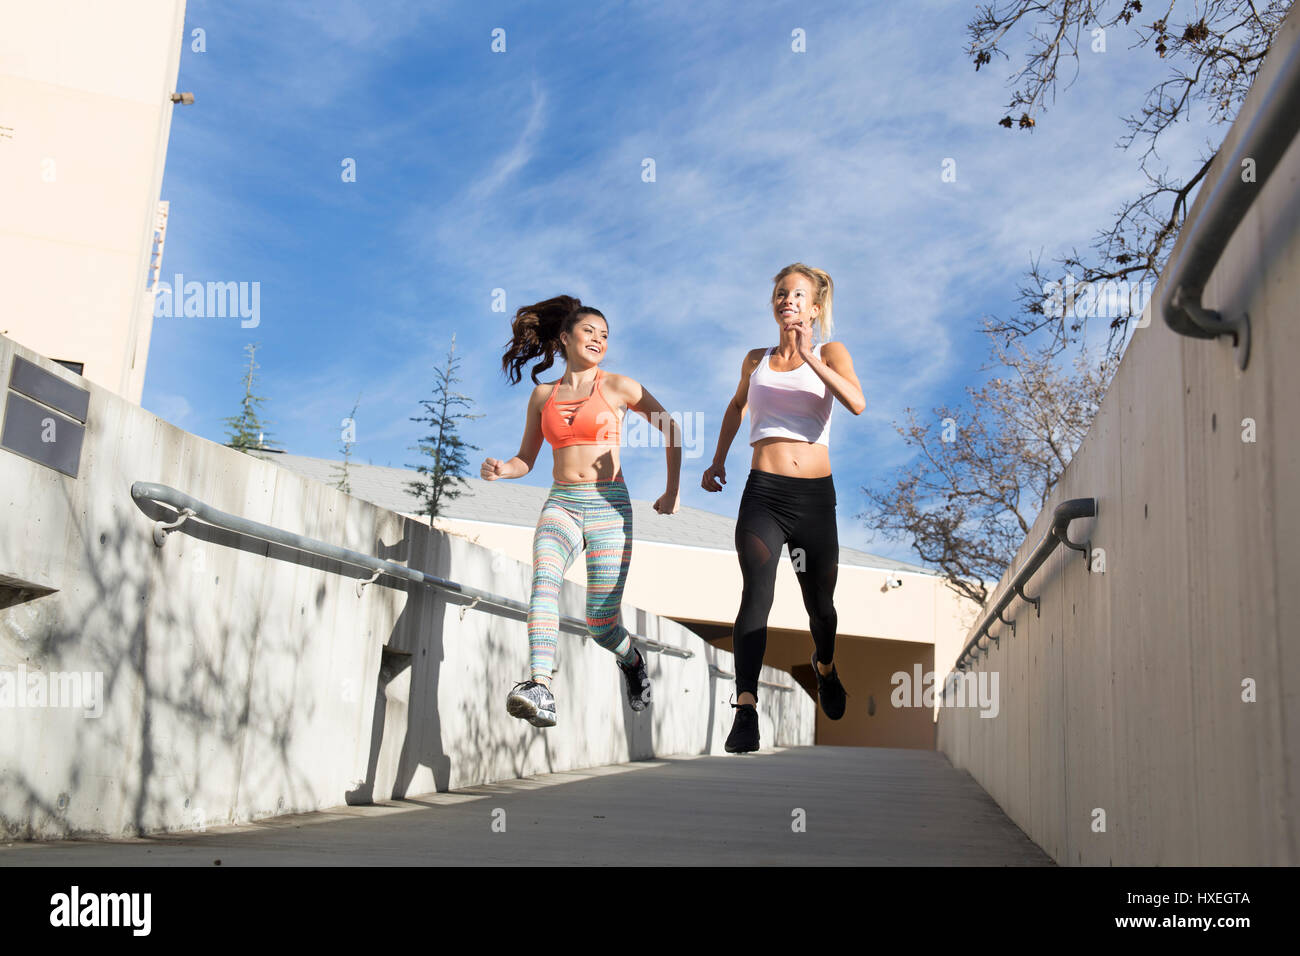 Girls workout and stretch together in a beautiful outdoor and urban setting. - Stock Image